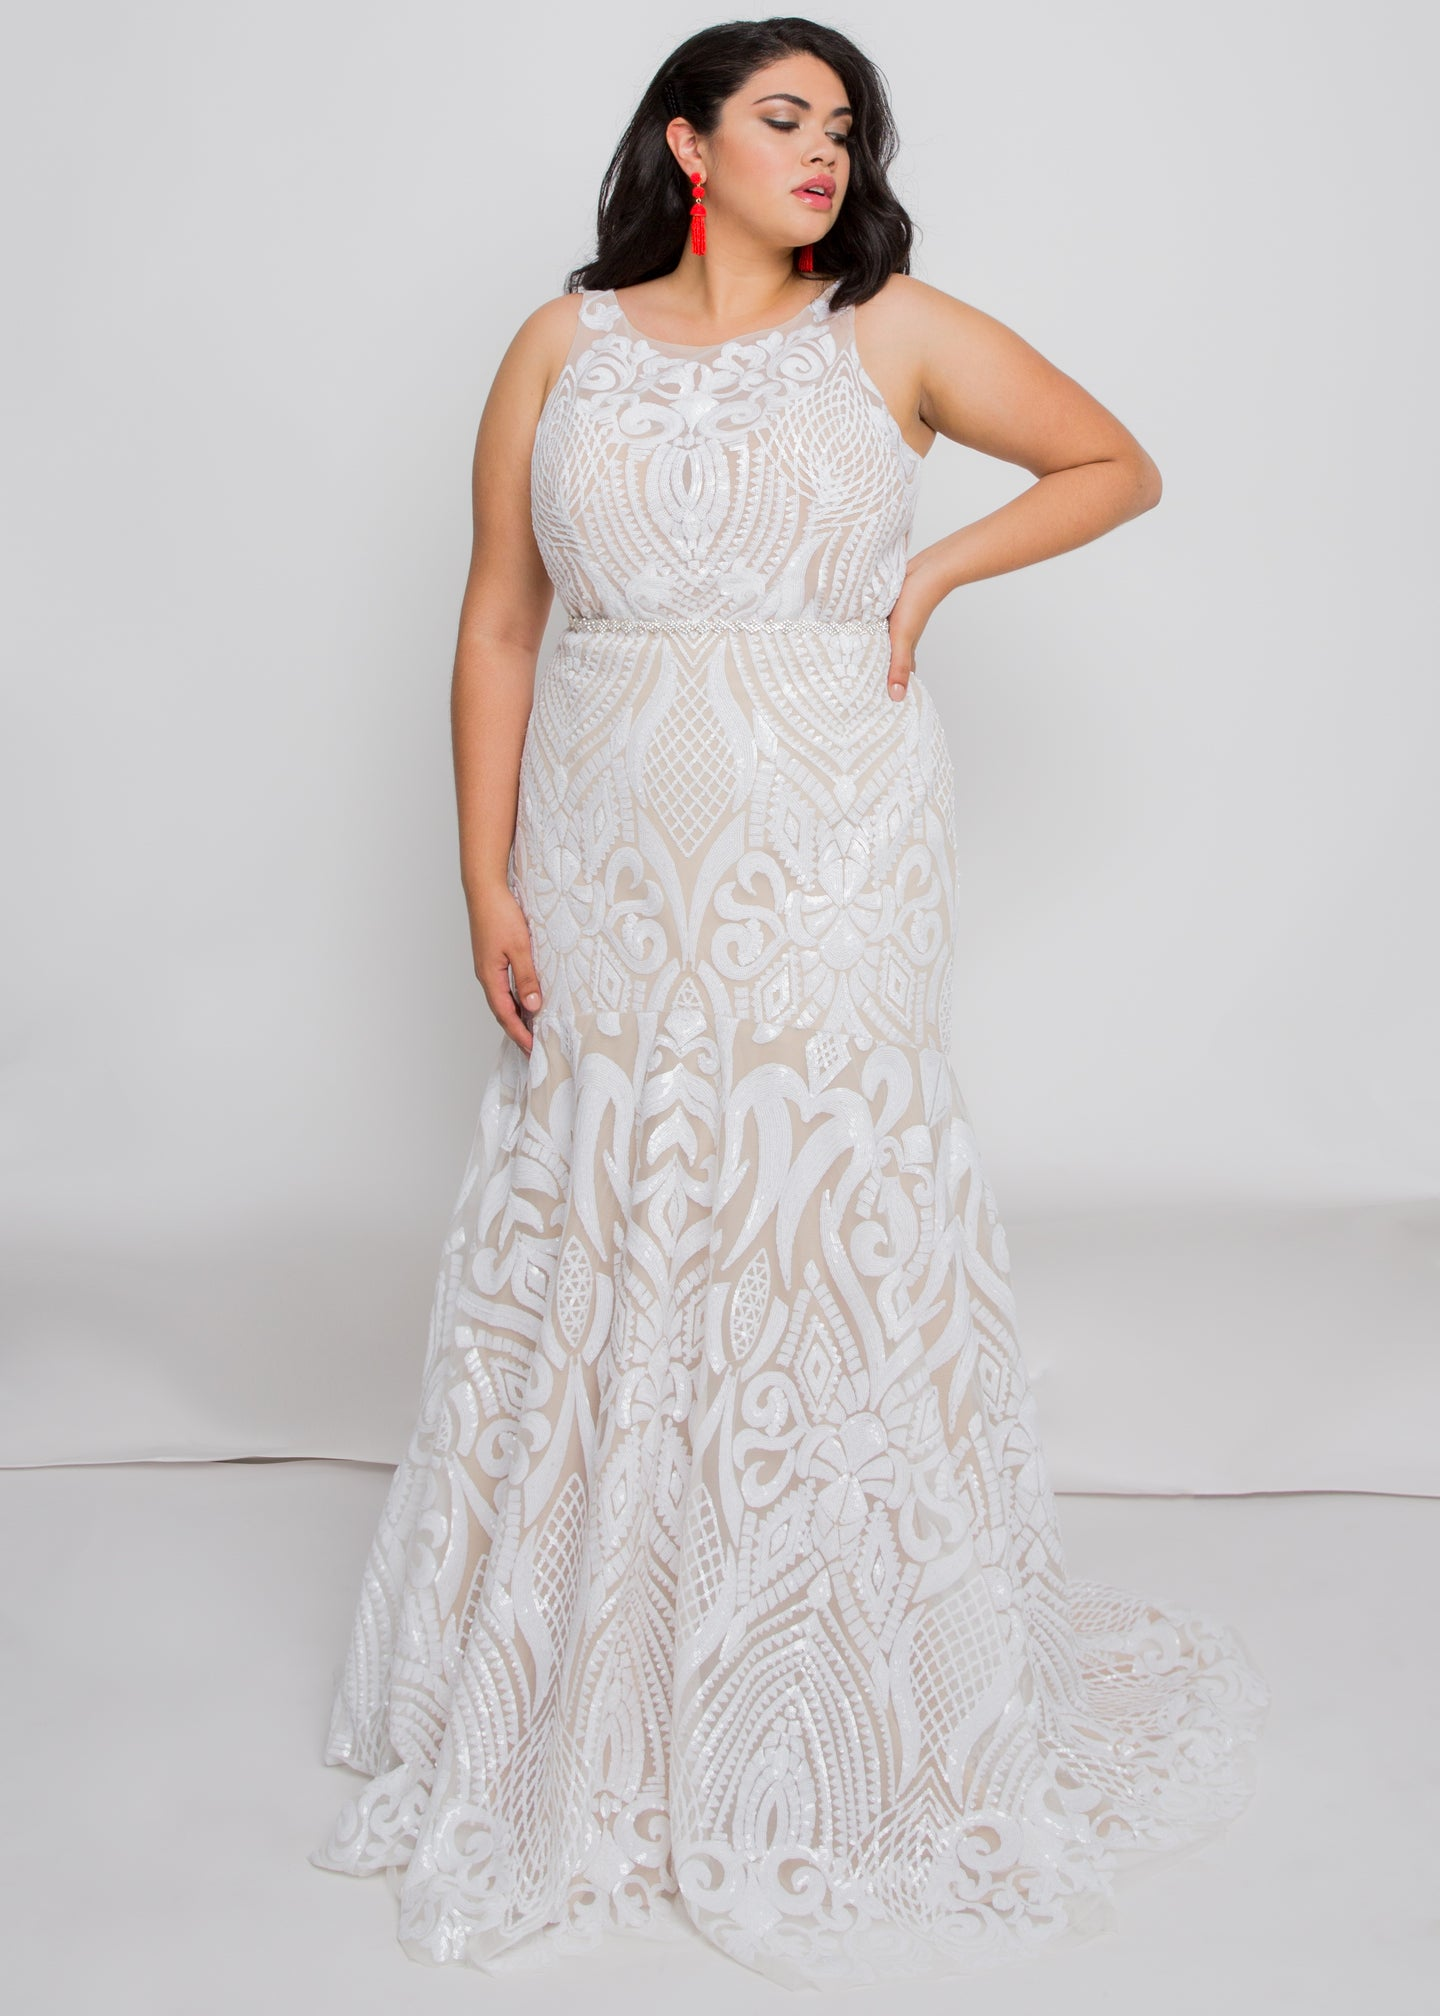 Gorgeous bridal gowns for all body shapes: plus size, curvy, or petite brides. Try on our wedding dresses at home. Size 0-30. Comfortable. Convenient. Fun. Lace or satin. Mermaid or A-line.This high neck top is covered in dreamy ivory sequins that reach around to the open illusion back. We love how the ivory sequins play against the nude underlay of this skirt and how the embellishment follows the trumpet fit.